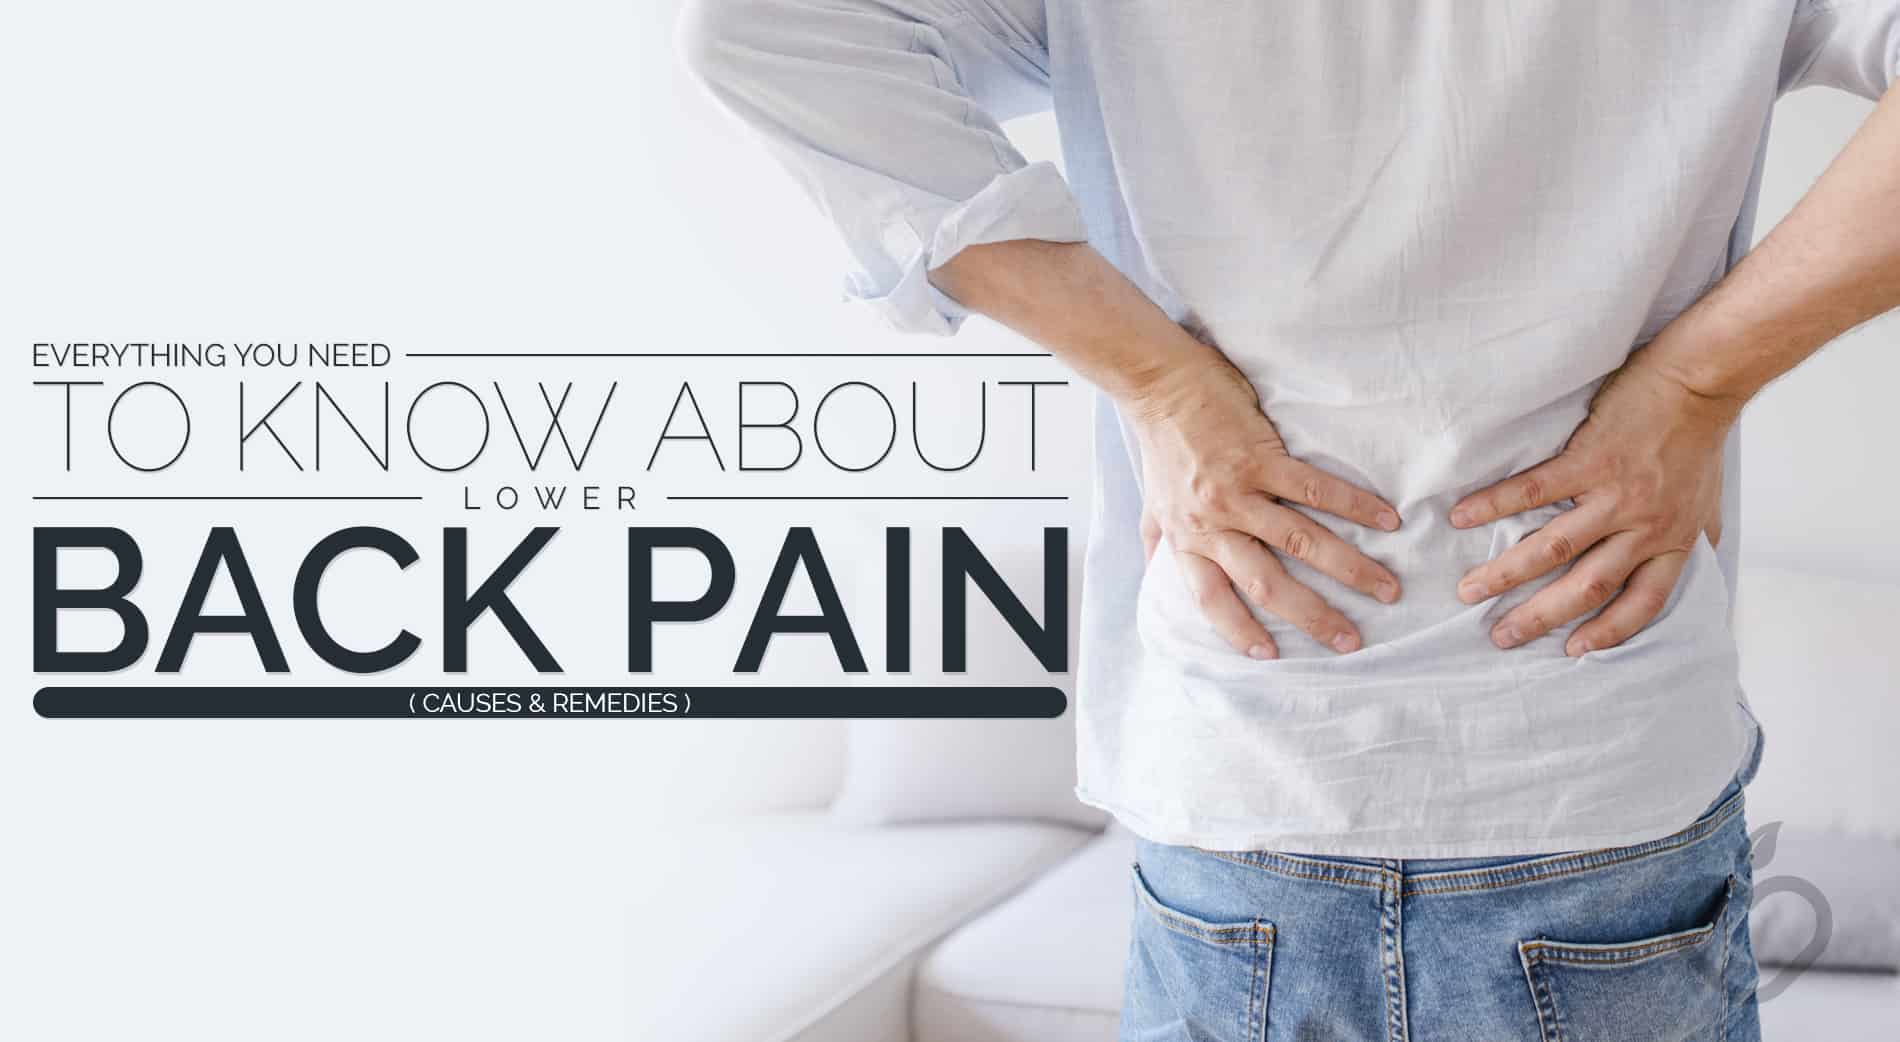 Lower Back Pain Image Design 1 - Every little thing You Must Know About Decrease Again Ache (Causes and Cures)